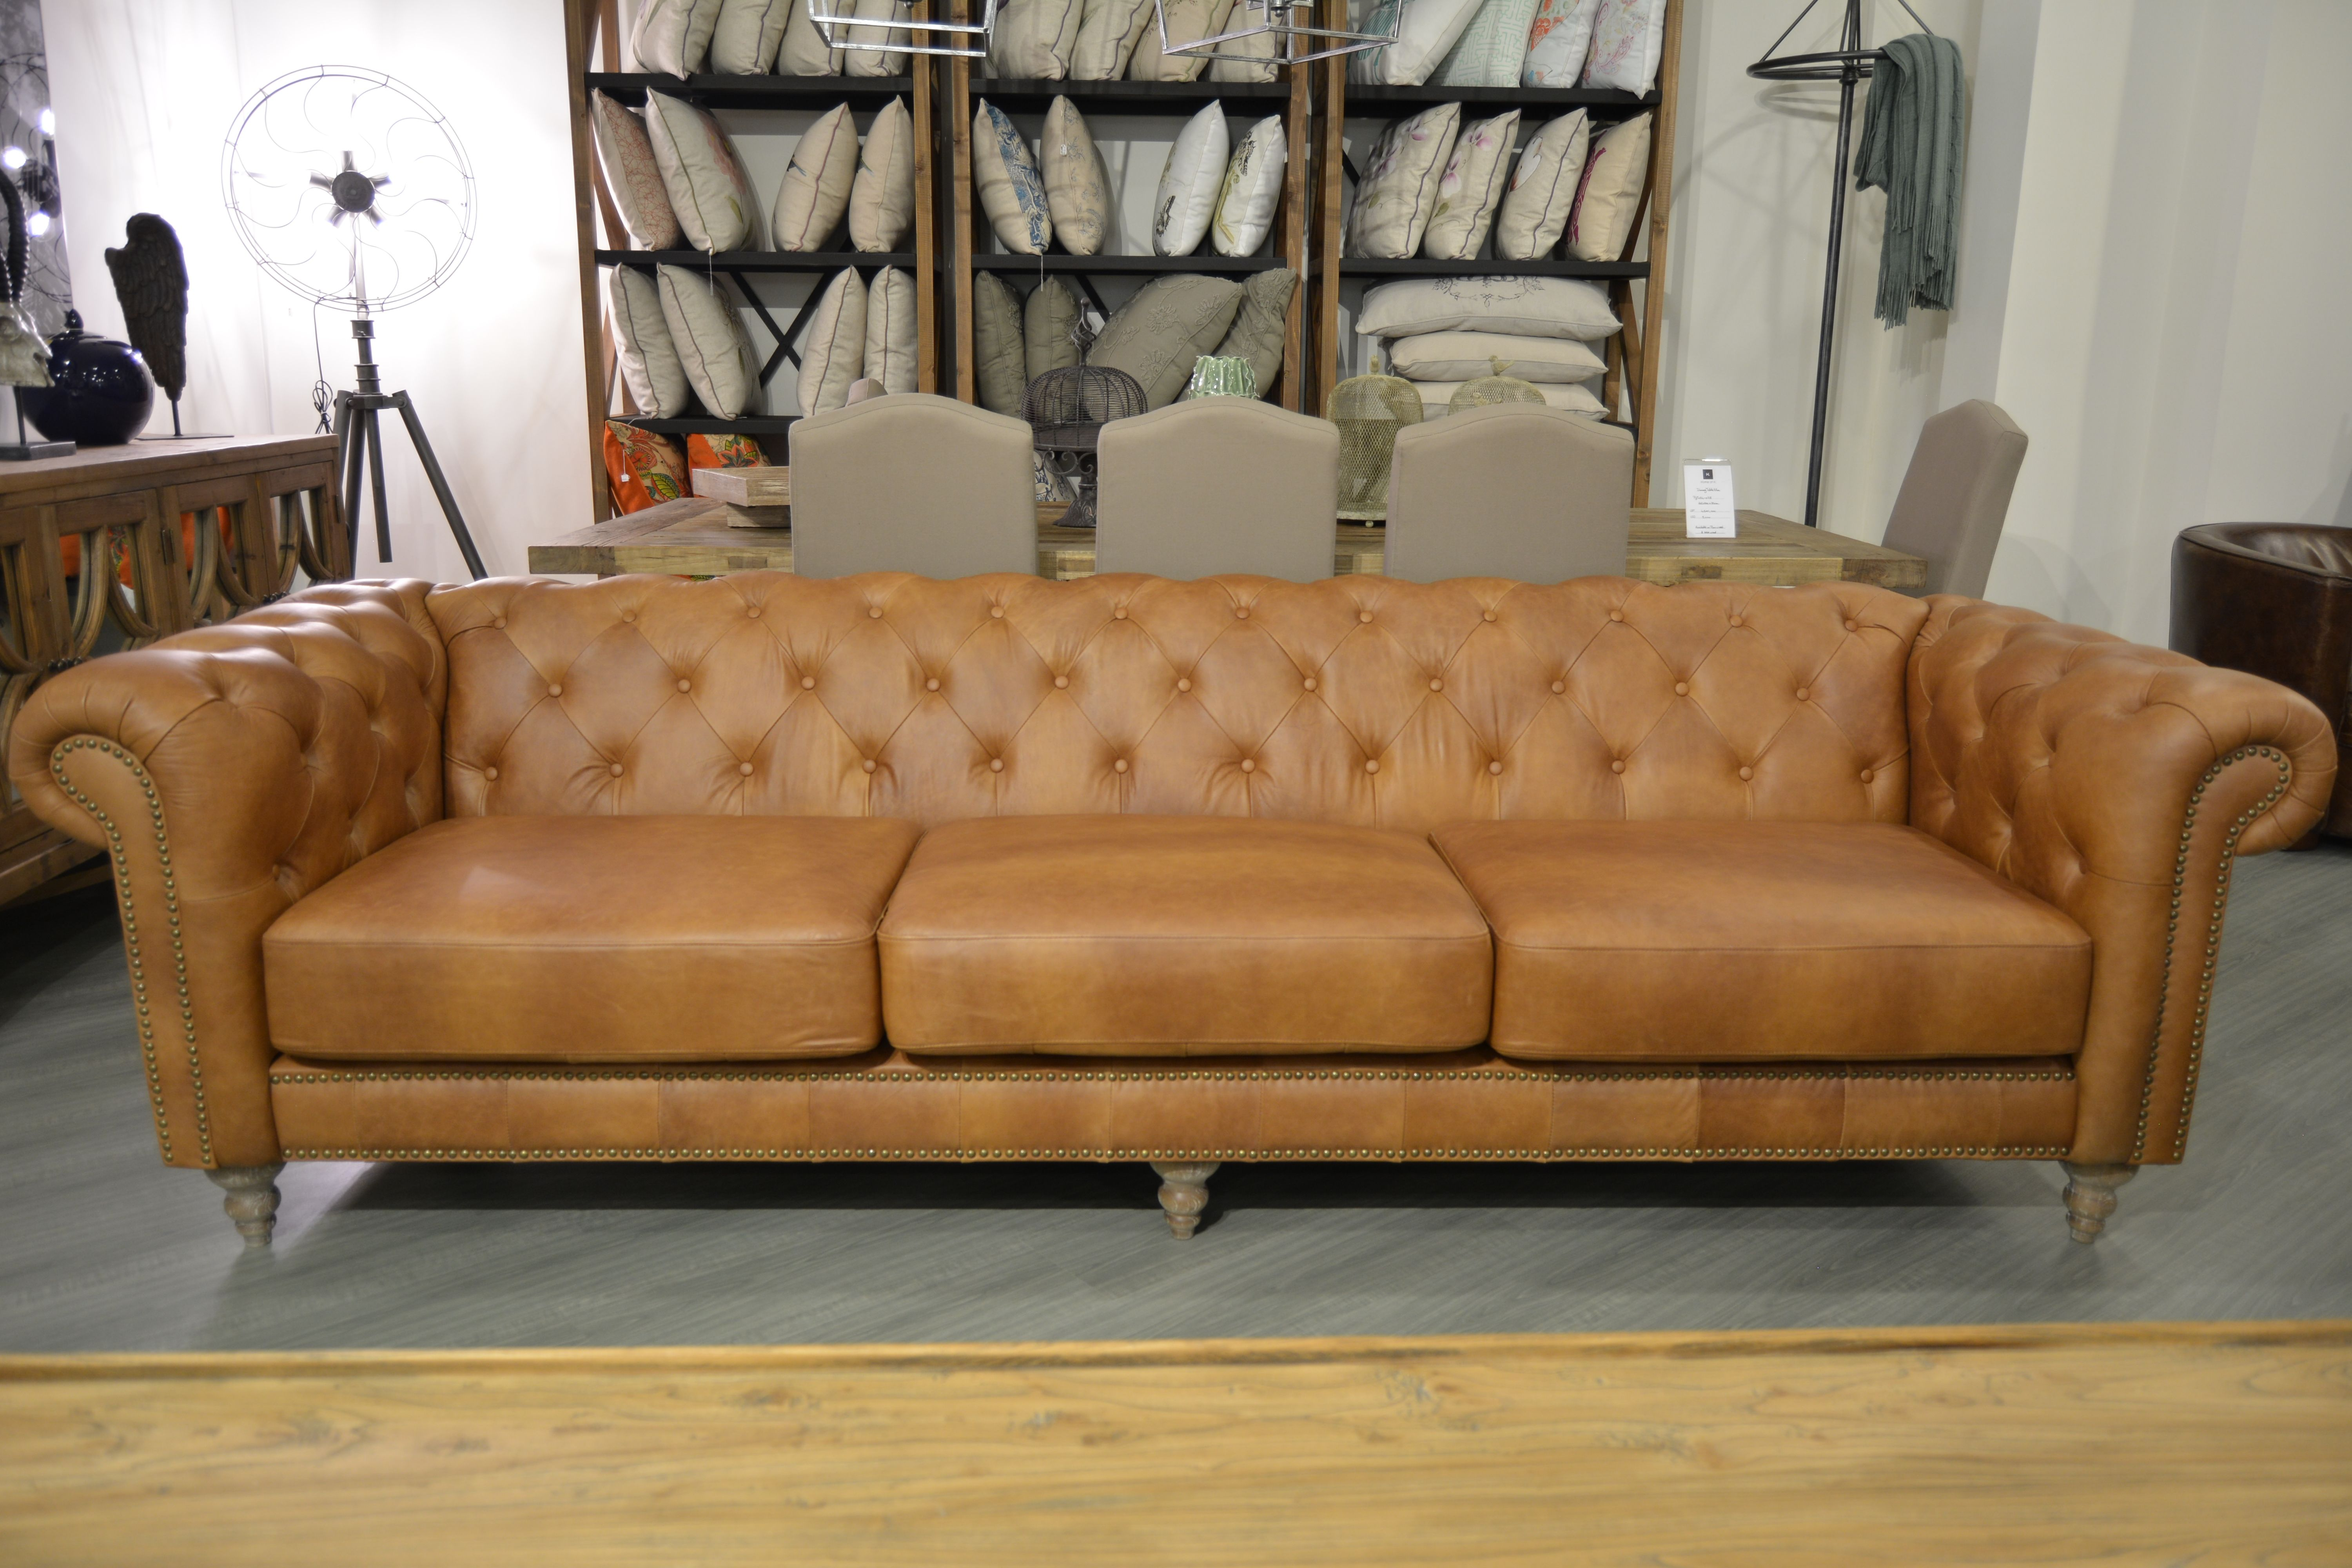 home and furniture chesterfield. Home Furniture, Decoration, 2017 Collection And Furniture Chesterfield T